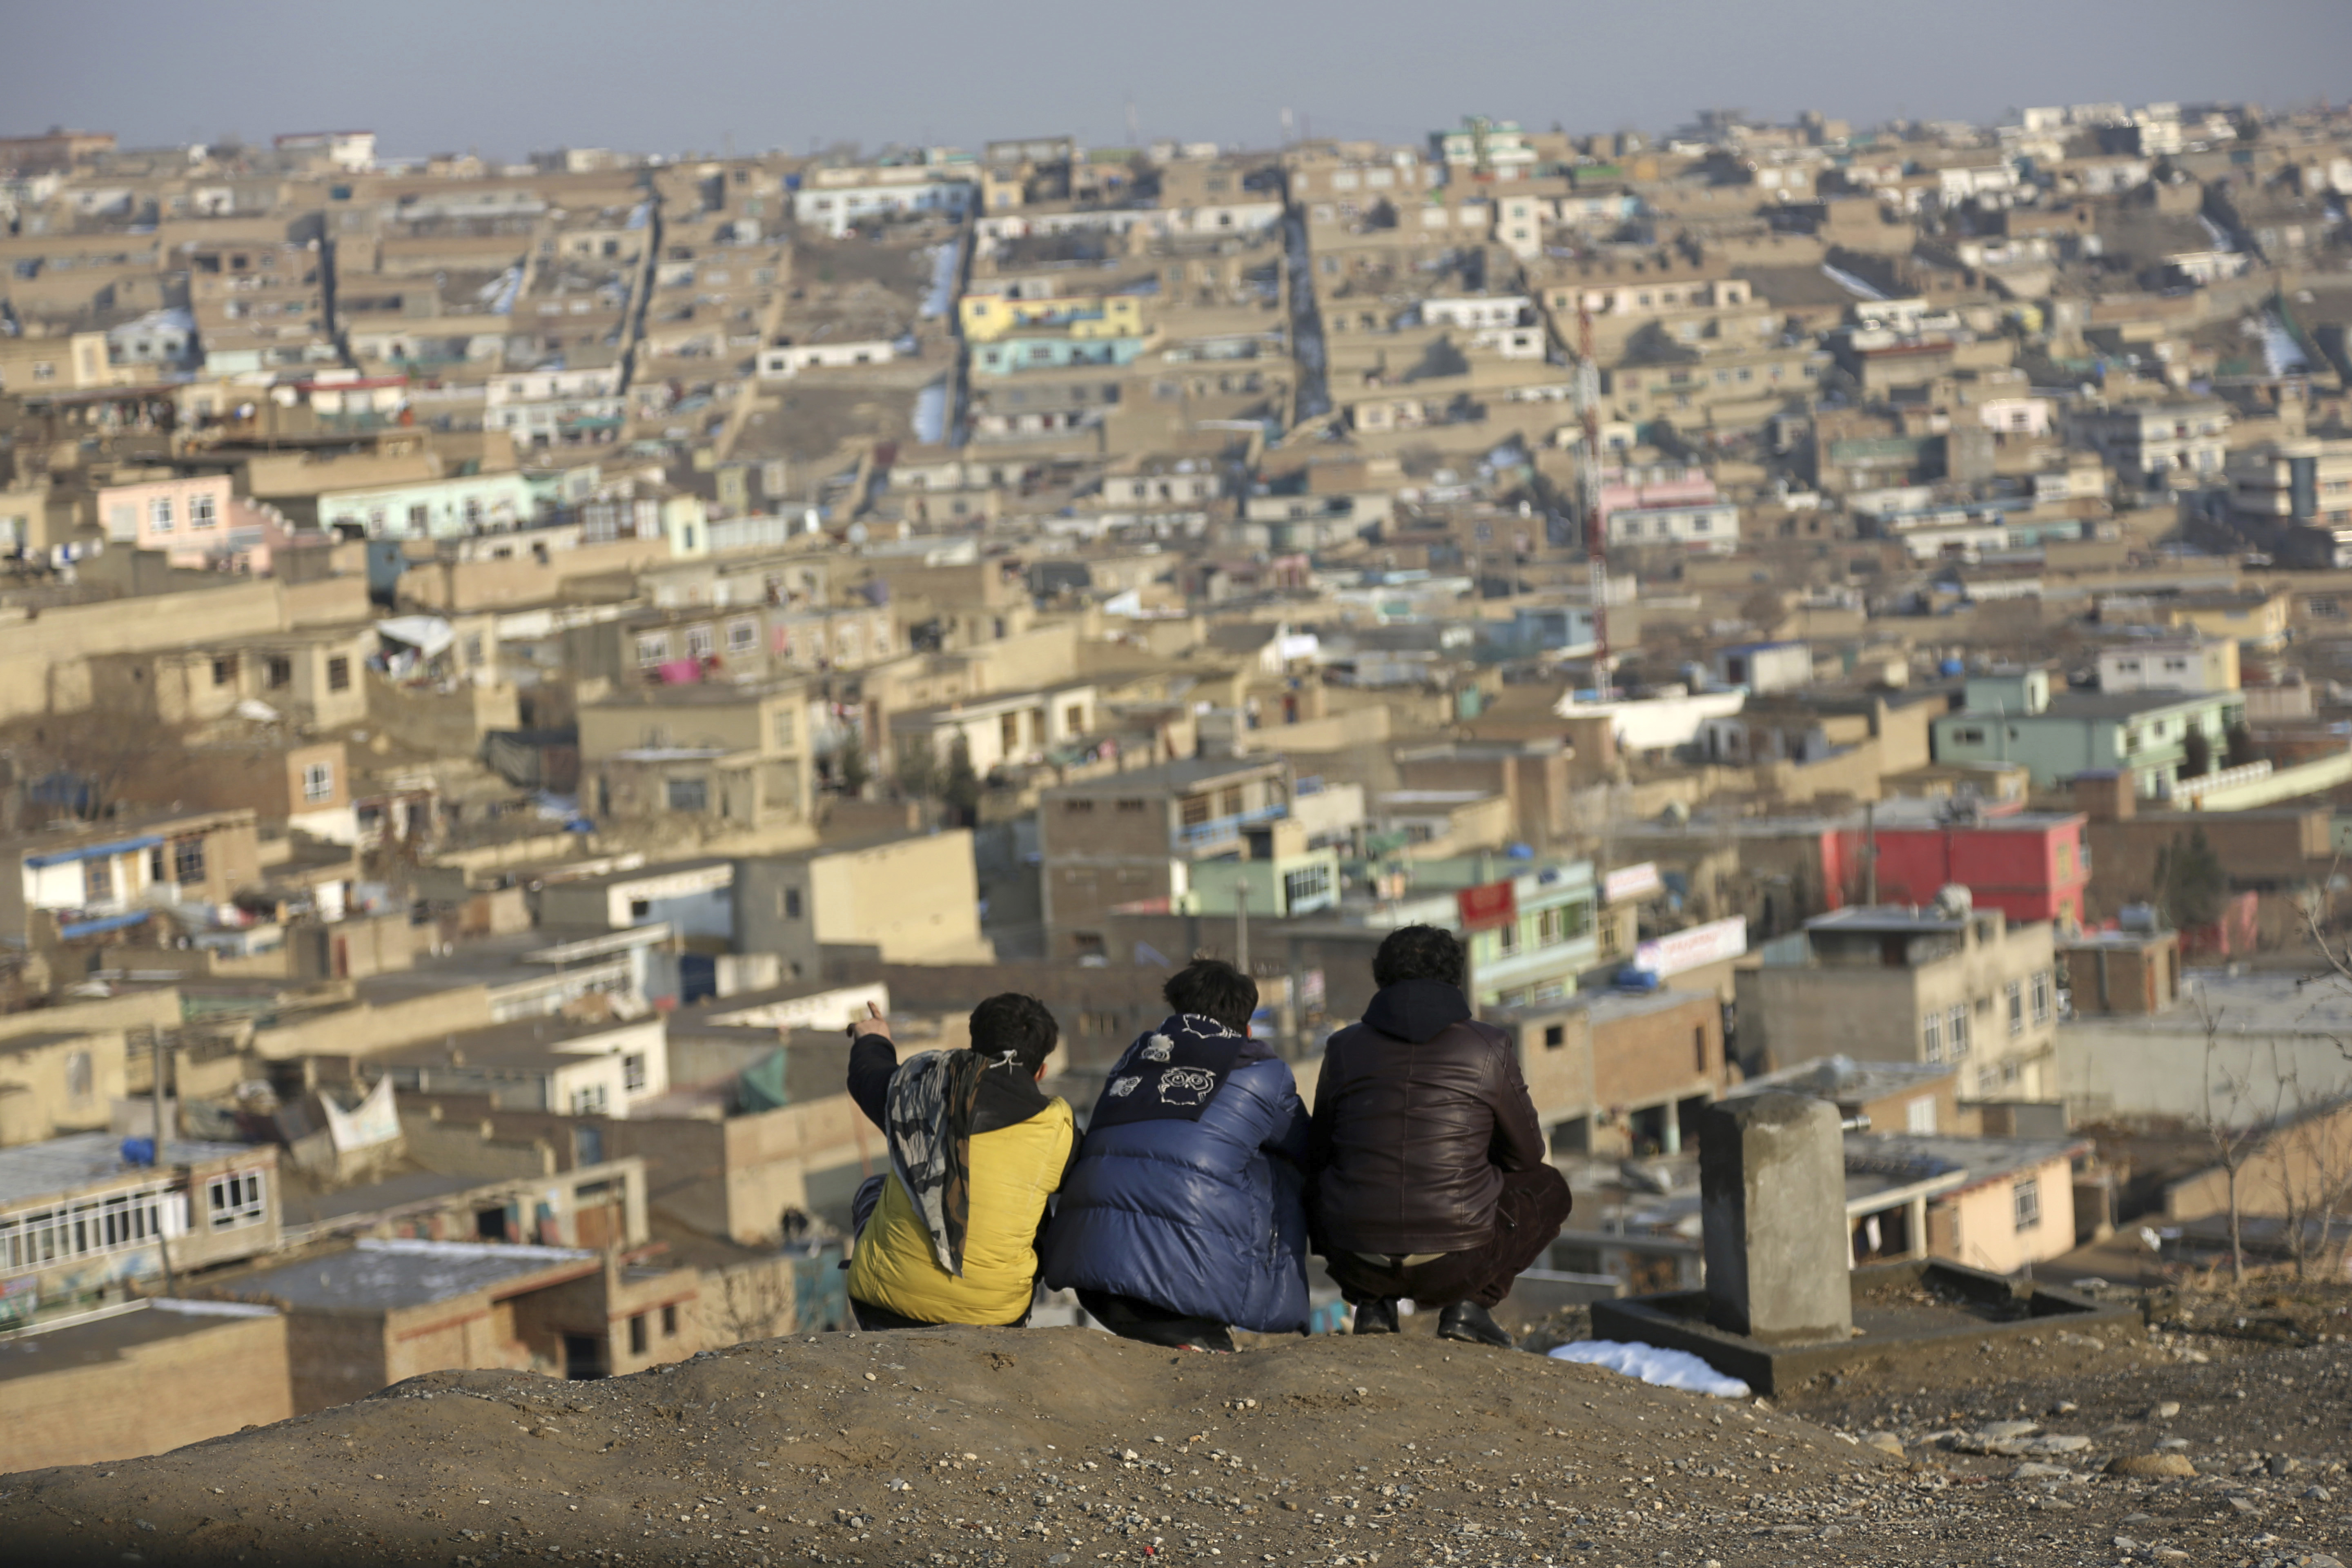 Afghan boys look over the city of Kabul, Afghanistan, Tuesday, Jan. 30, 2018. (AP Photo/Rahmat Gul)